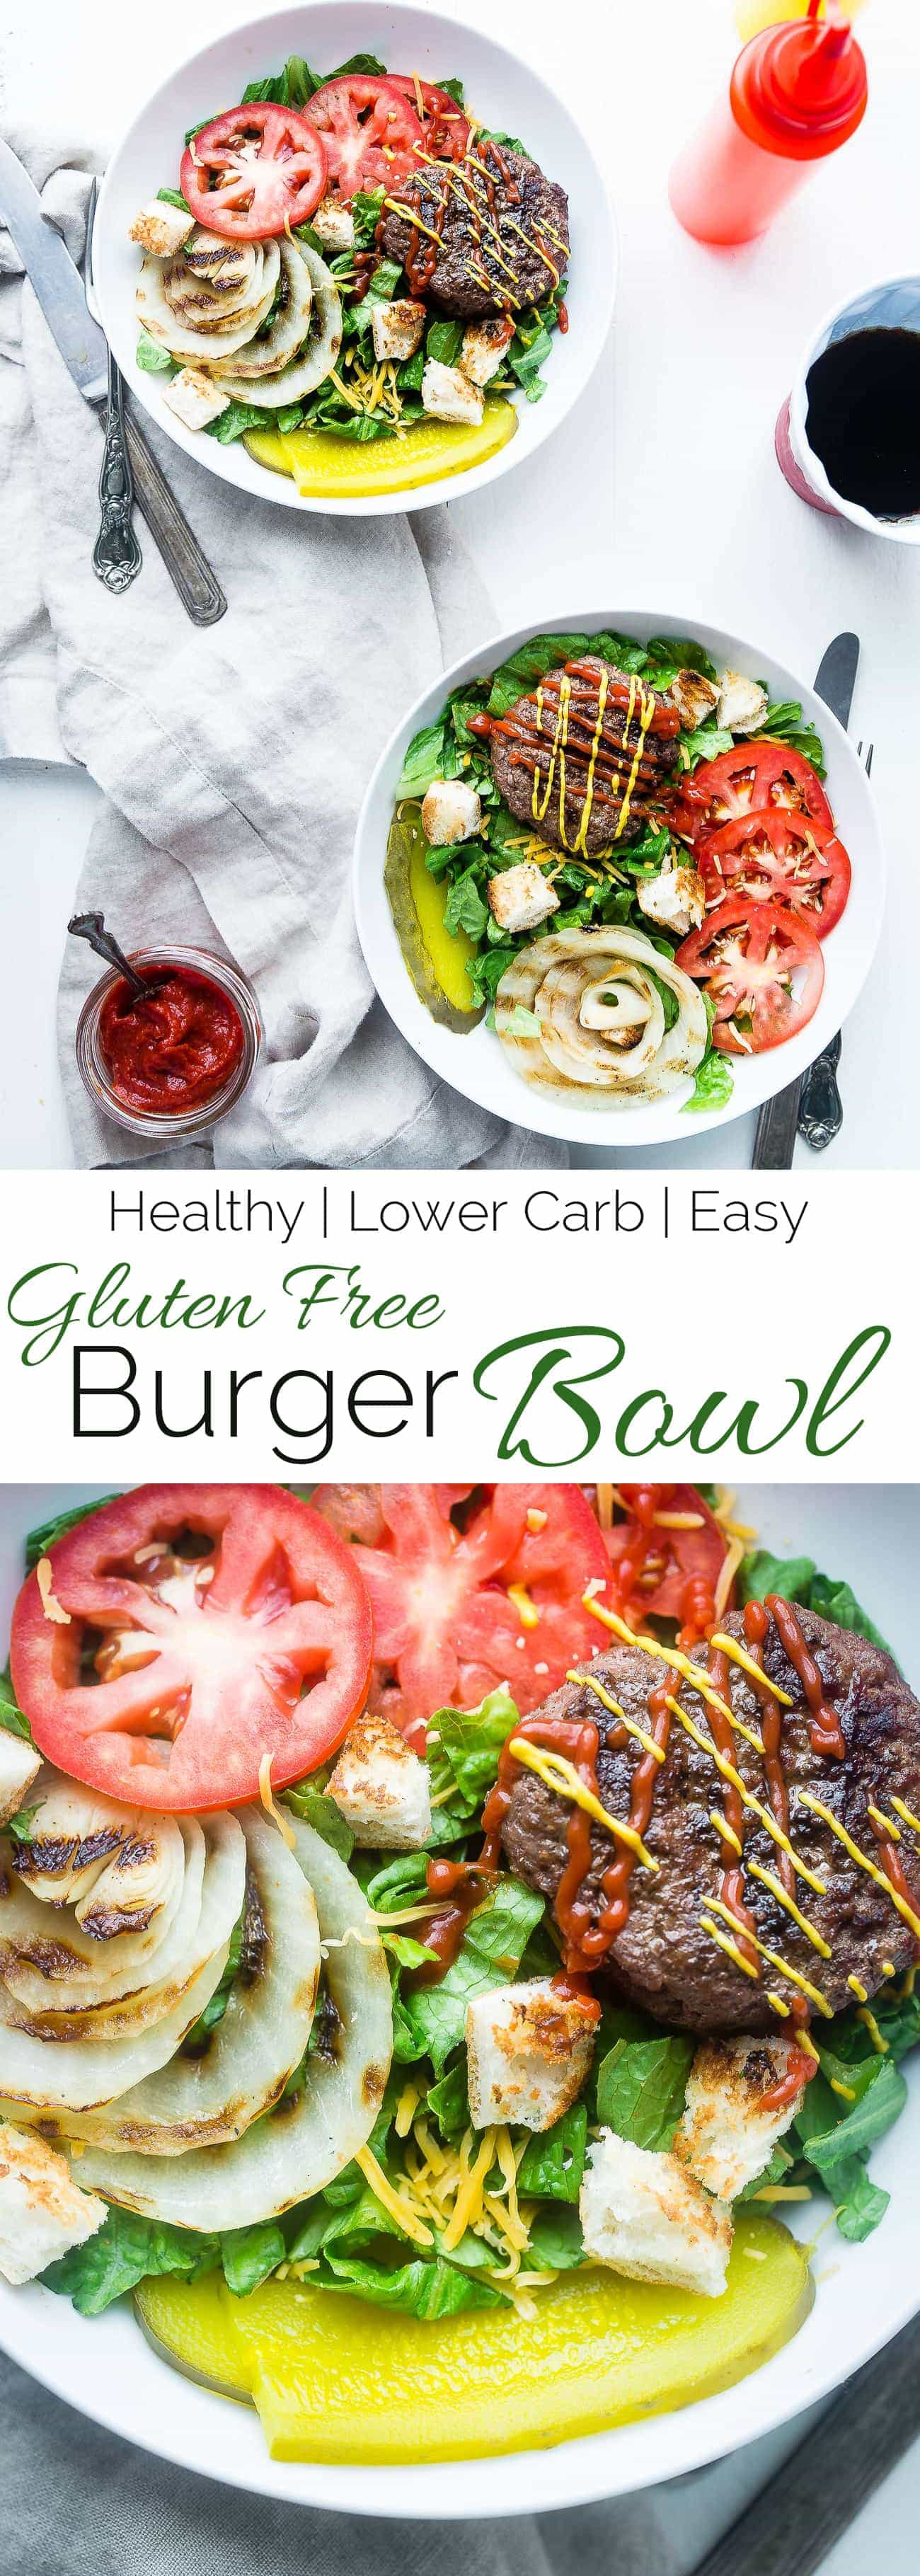 Cheeseburger Salad Bowls - These gluten free cheeseburger salad bowls are a healthy, lighter way to get your burger fix this Summer! They're a healthy meal that the whole family will love! | Foodfaithfitness.com | @FoodFaithFit